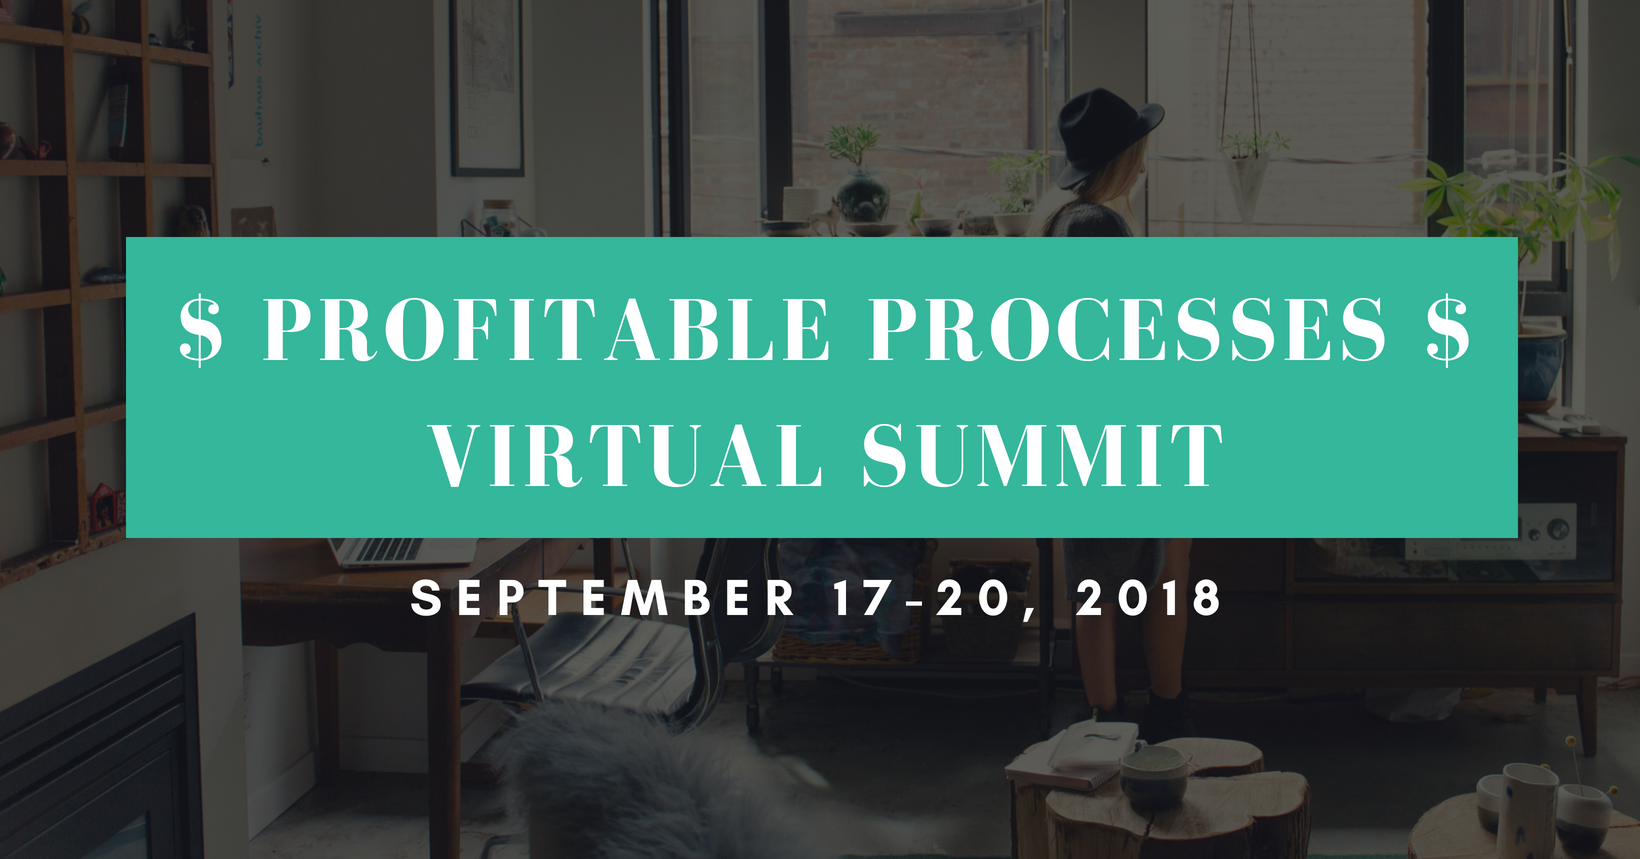 2018 Profitable Processes Virtual Smmit - September 17th-20th , 2018 join savvy entrepreneurs as they share their secrets to improving profitability through smart processes learned through years of experience. Skip so many headaches in your business by learning from those that have gone before you, already made mistakes, and have trailblazed solutions. http://bit.ly/2nLZvMp